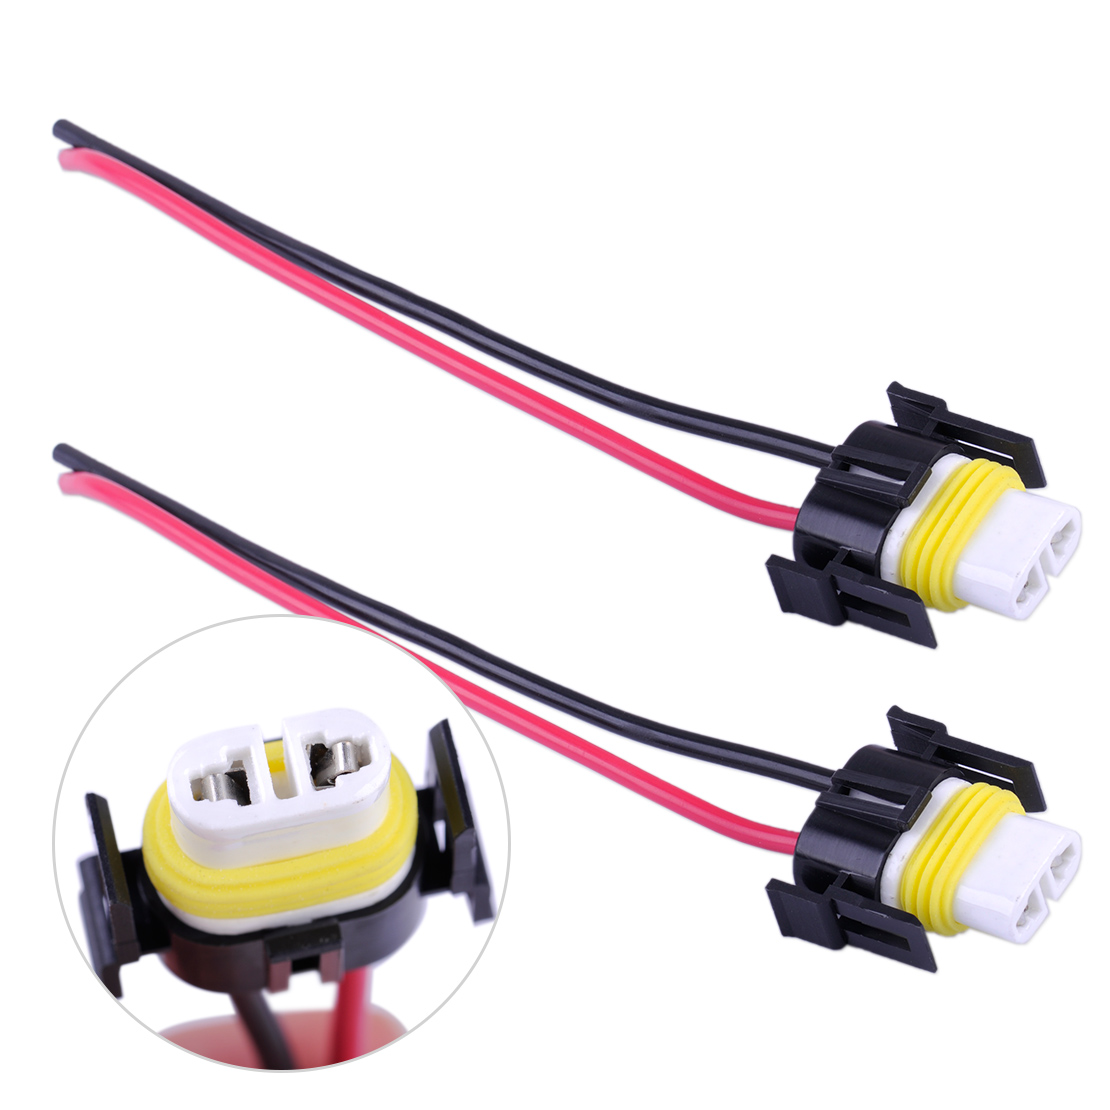 beler 2pcs H11 H8 880 881 Wiring Harness Socket Female Adapter Wire  Connector Cable Plug for